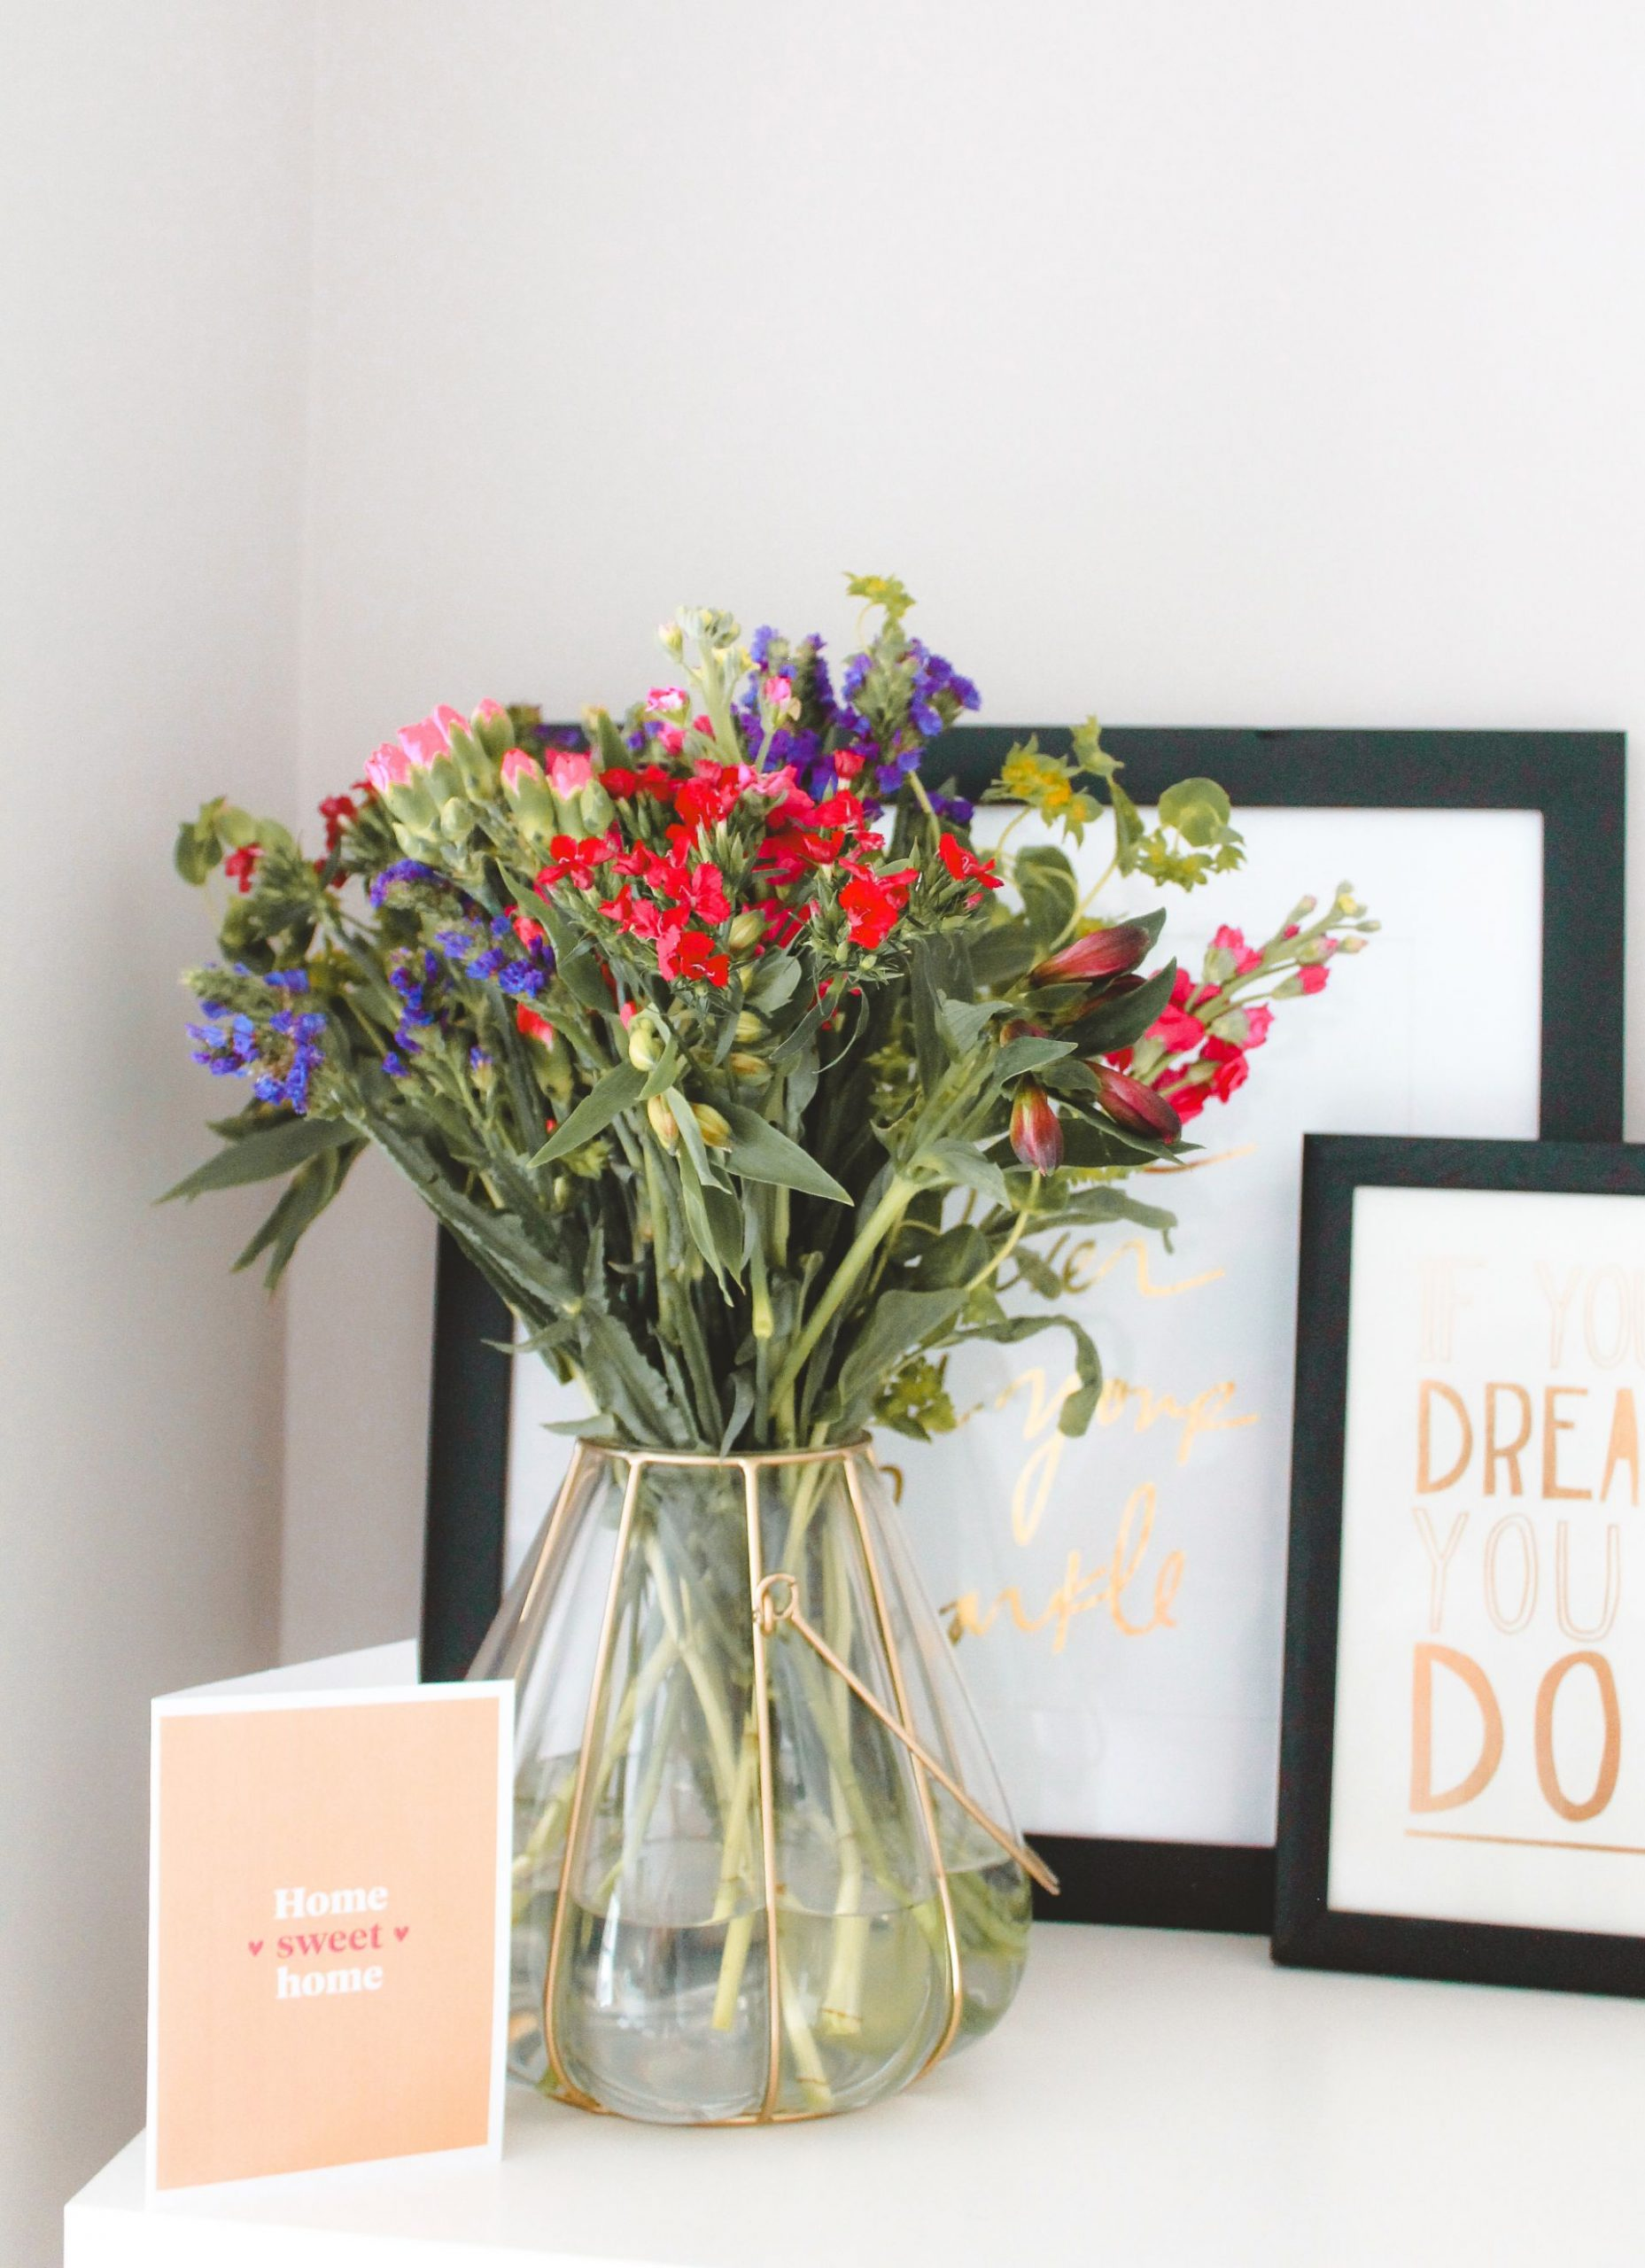 i've moved out, house sharing, flowers,